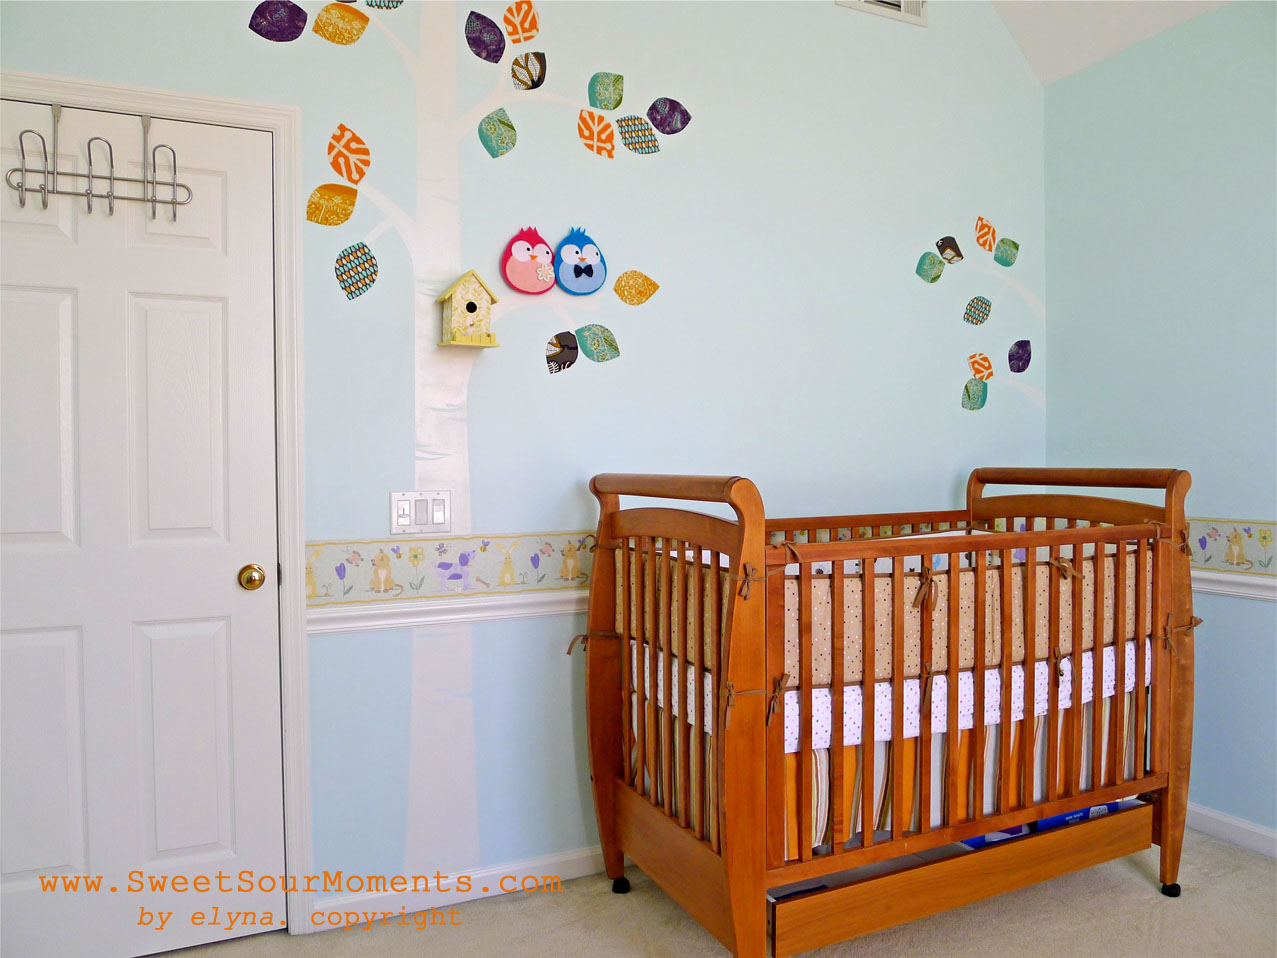 Baby nursery part 1 wall mural diy sweetsourmoments for Baby nursery mural